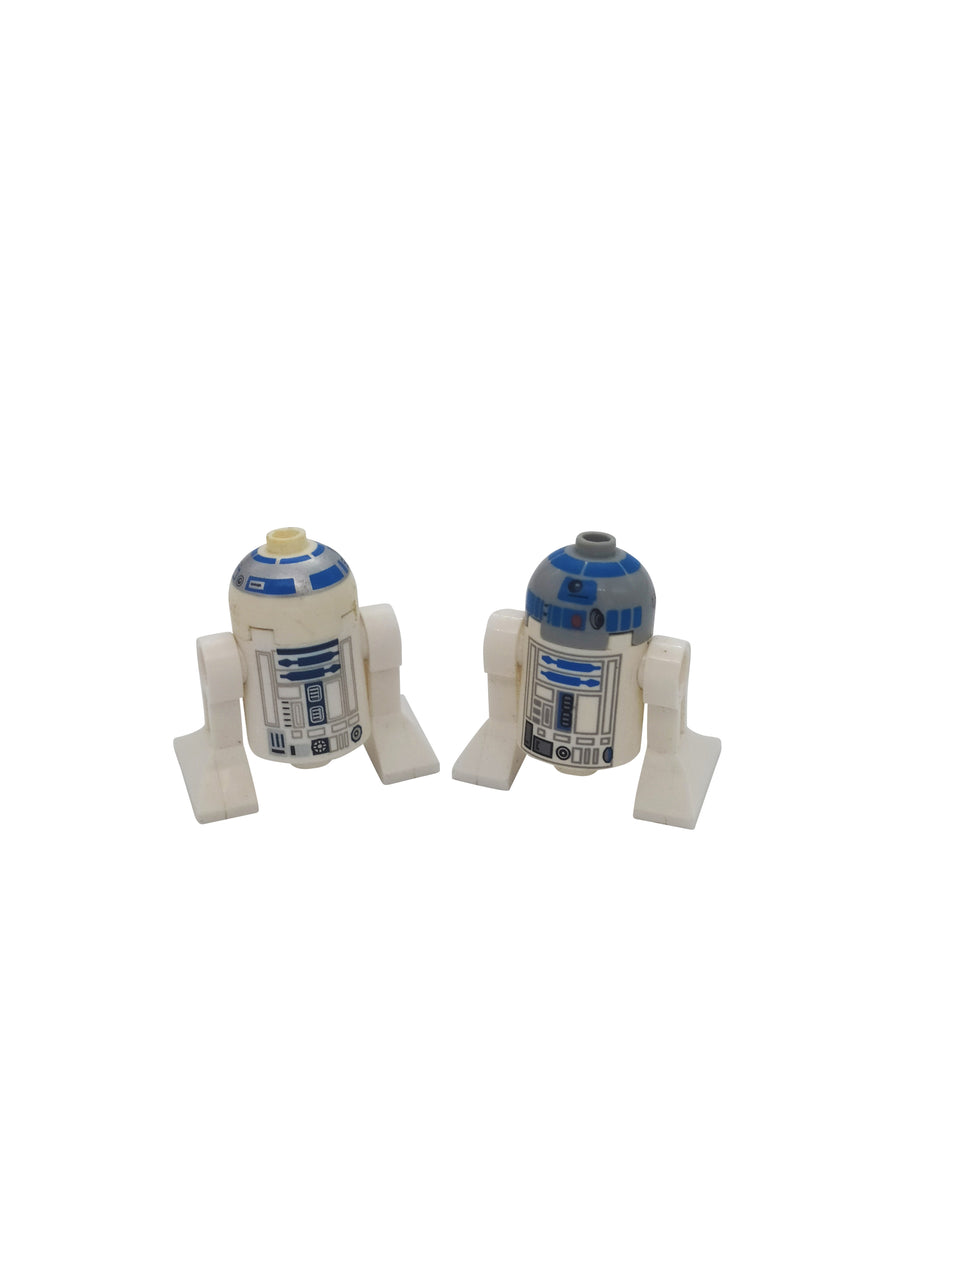 2 special Minifigures  , R2-D2 - from star wars lego